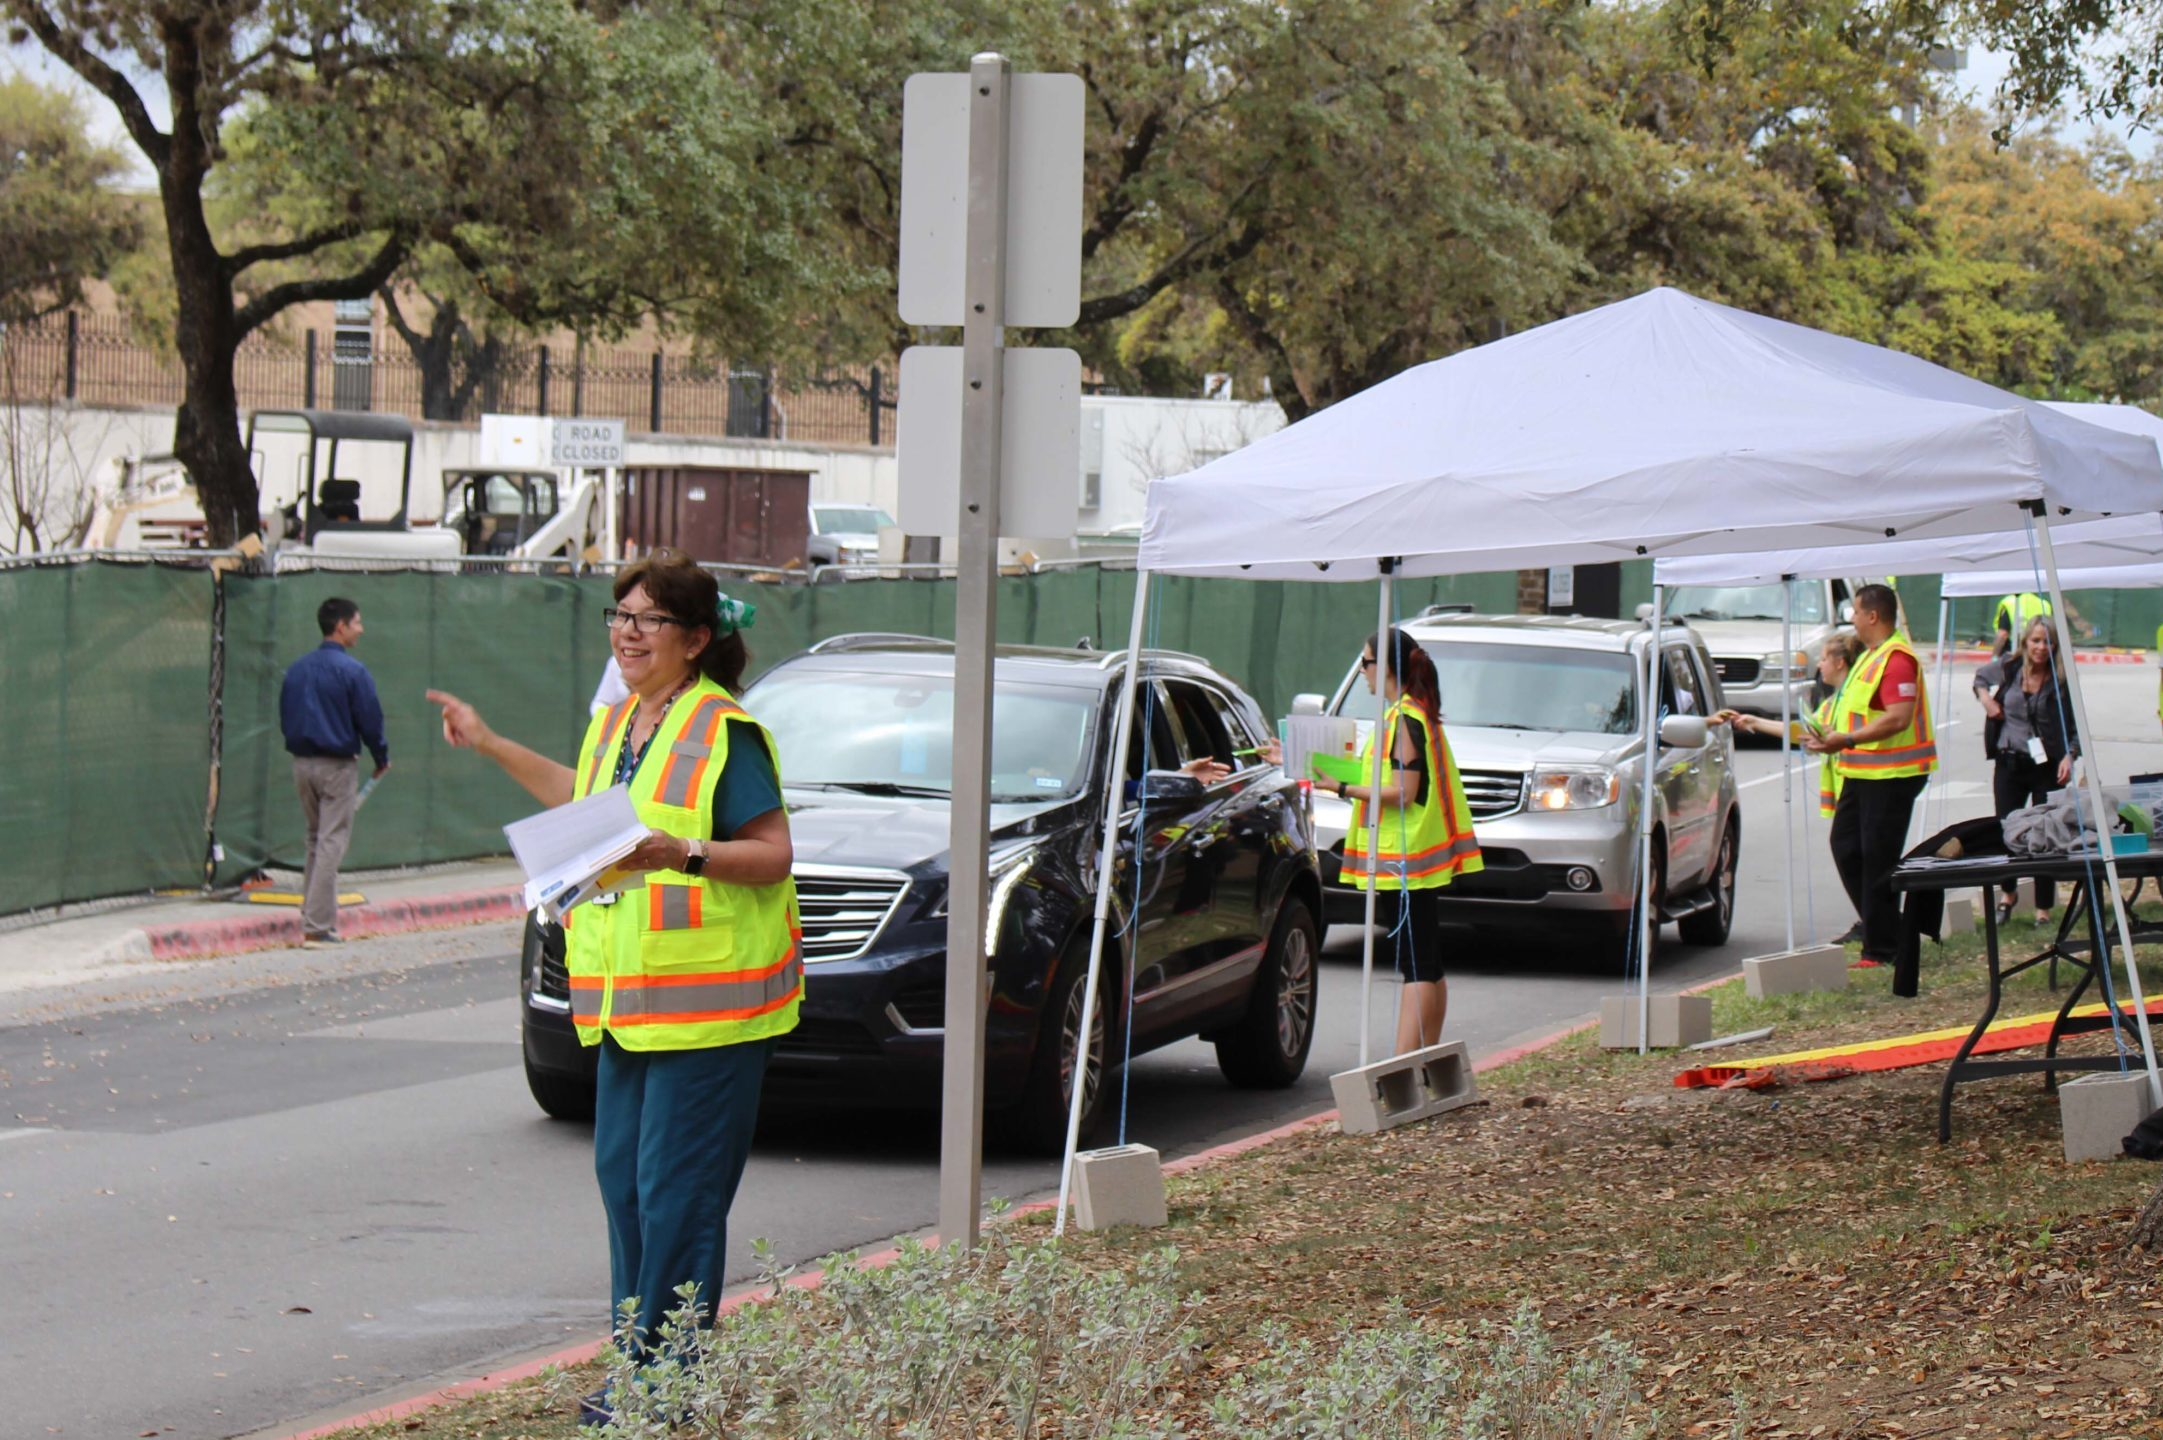 VA staff and volunteers screen patients, employees, and visitors at the entrance to the Audie Murphy Memorial VA Hospital in San Antonio.